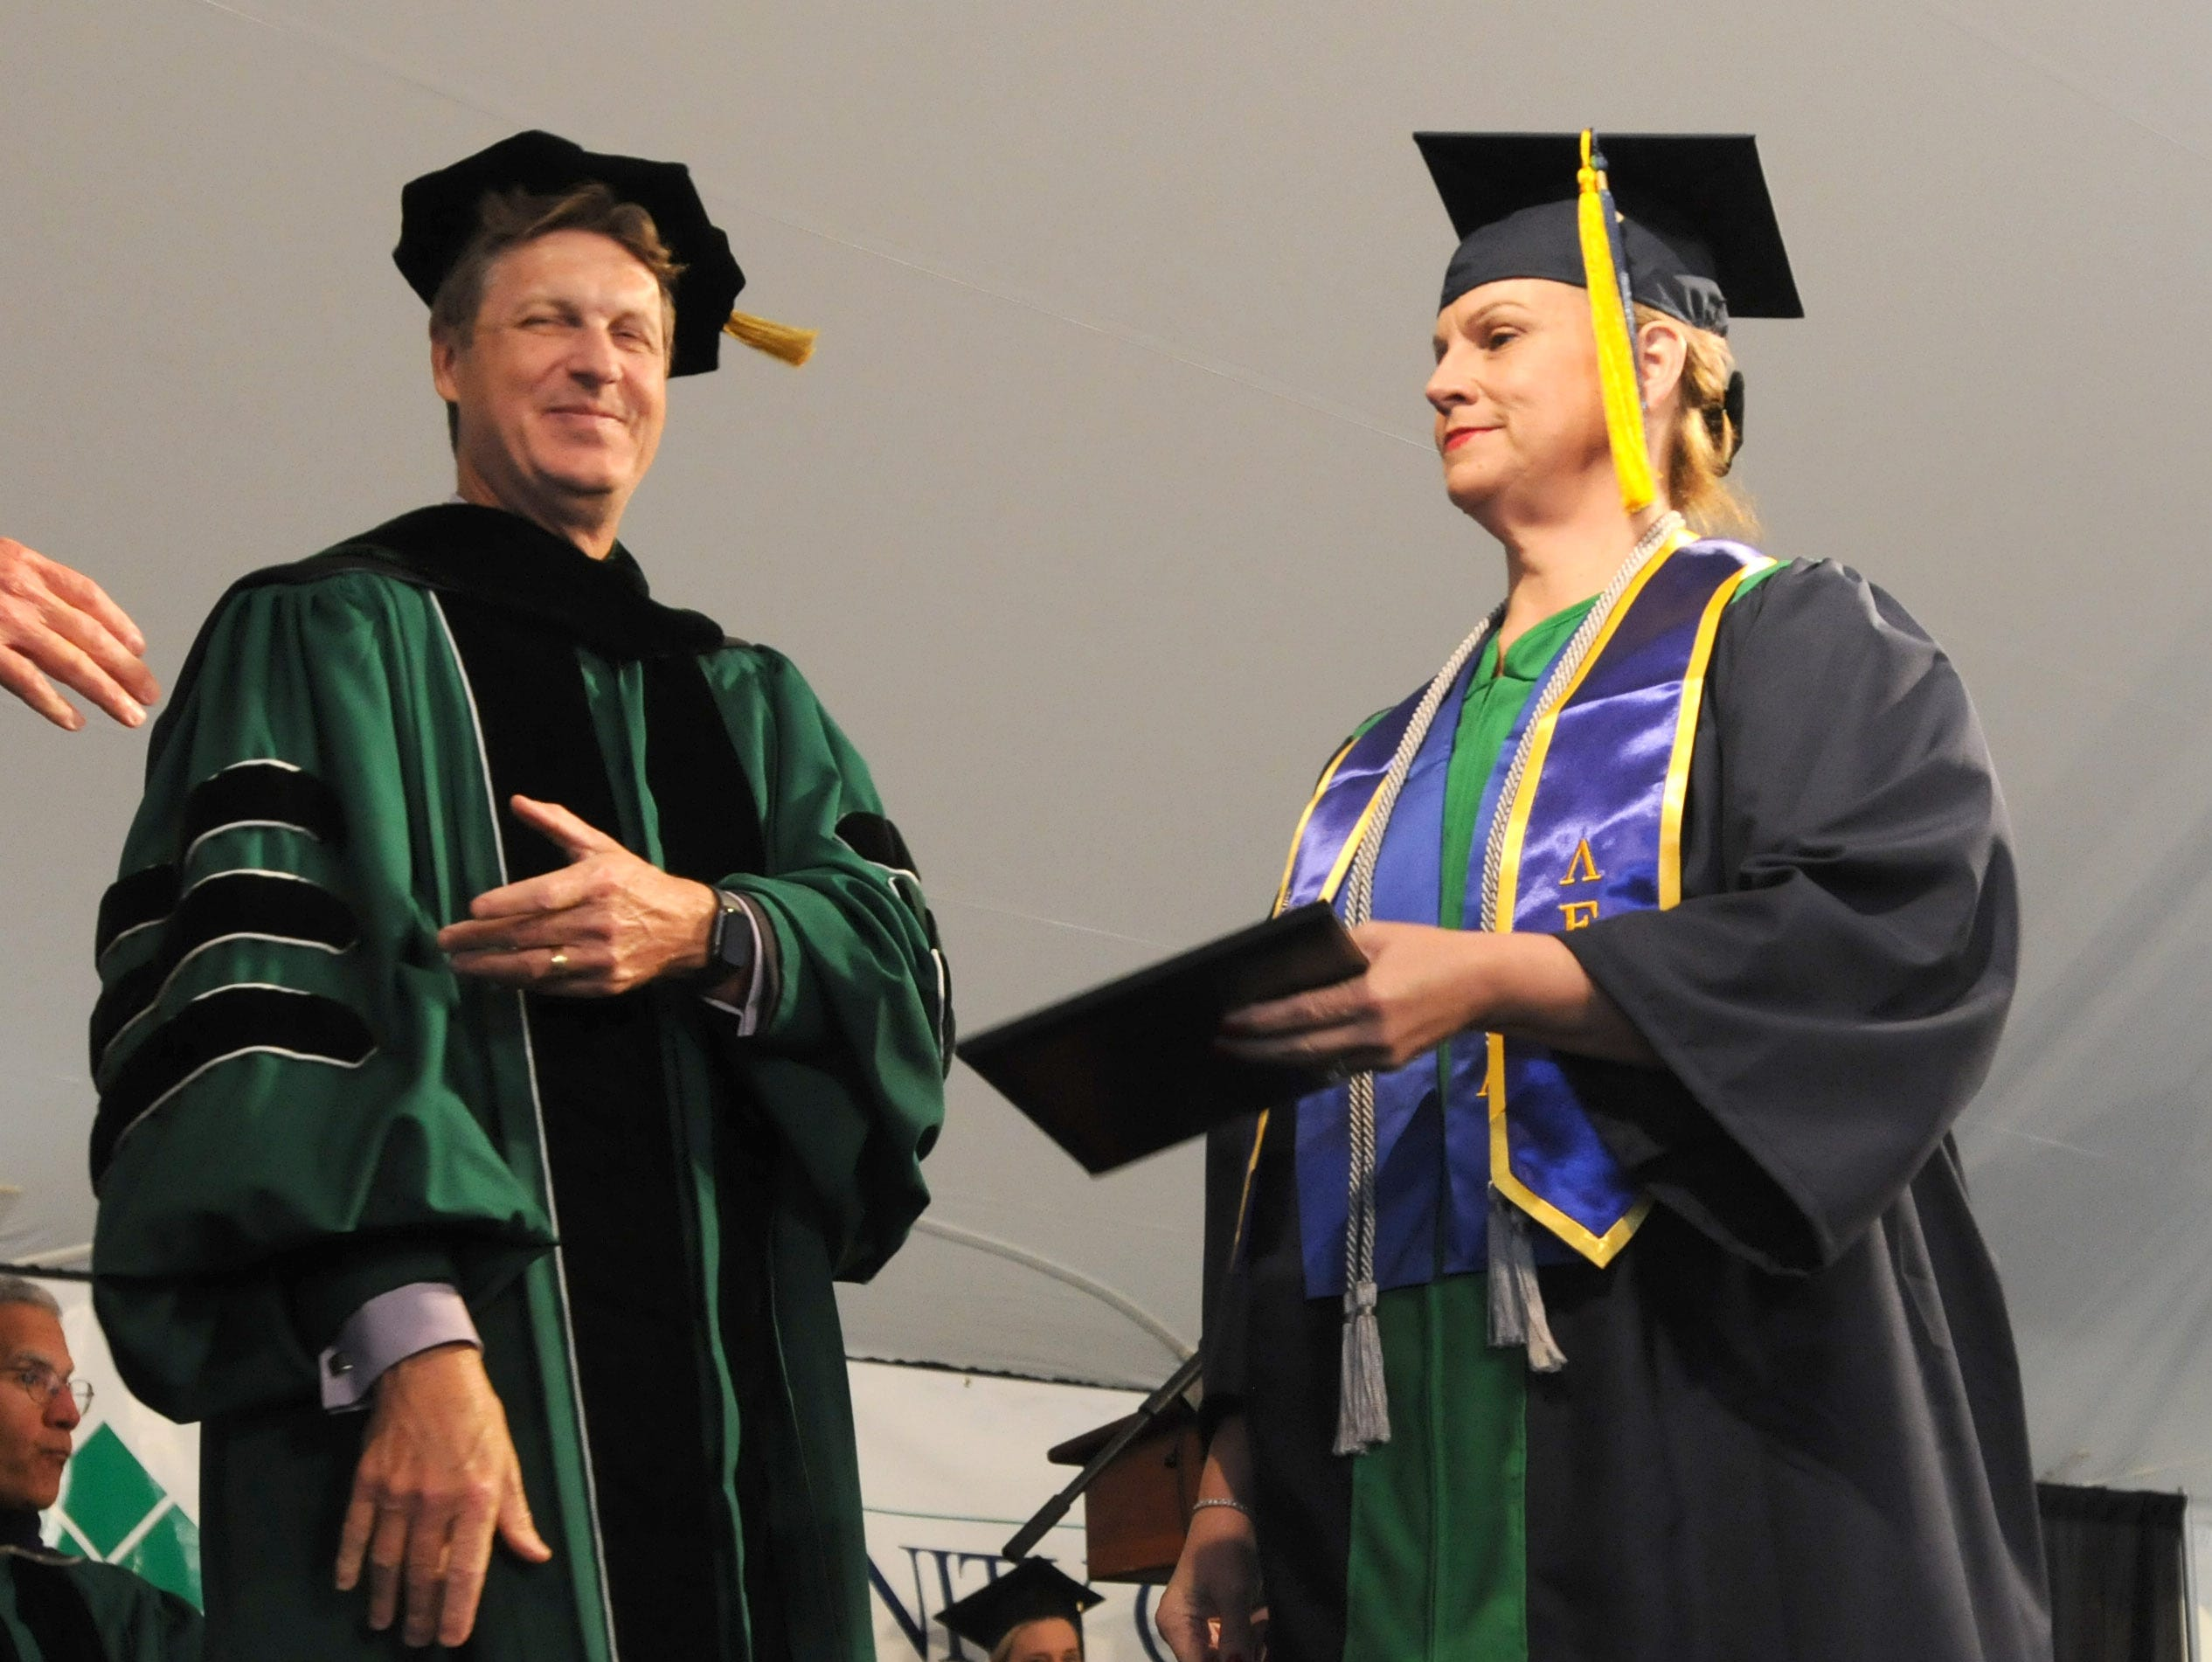 DelTech Terry campus graduates receiving their diplomas Monday night.